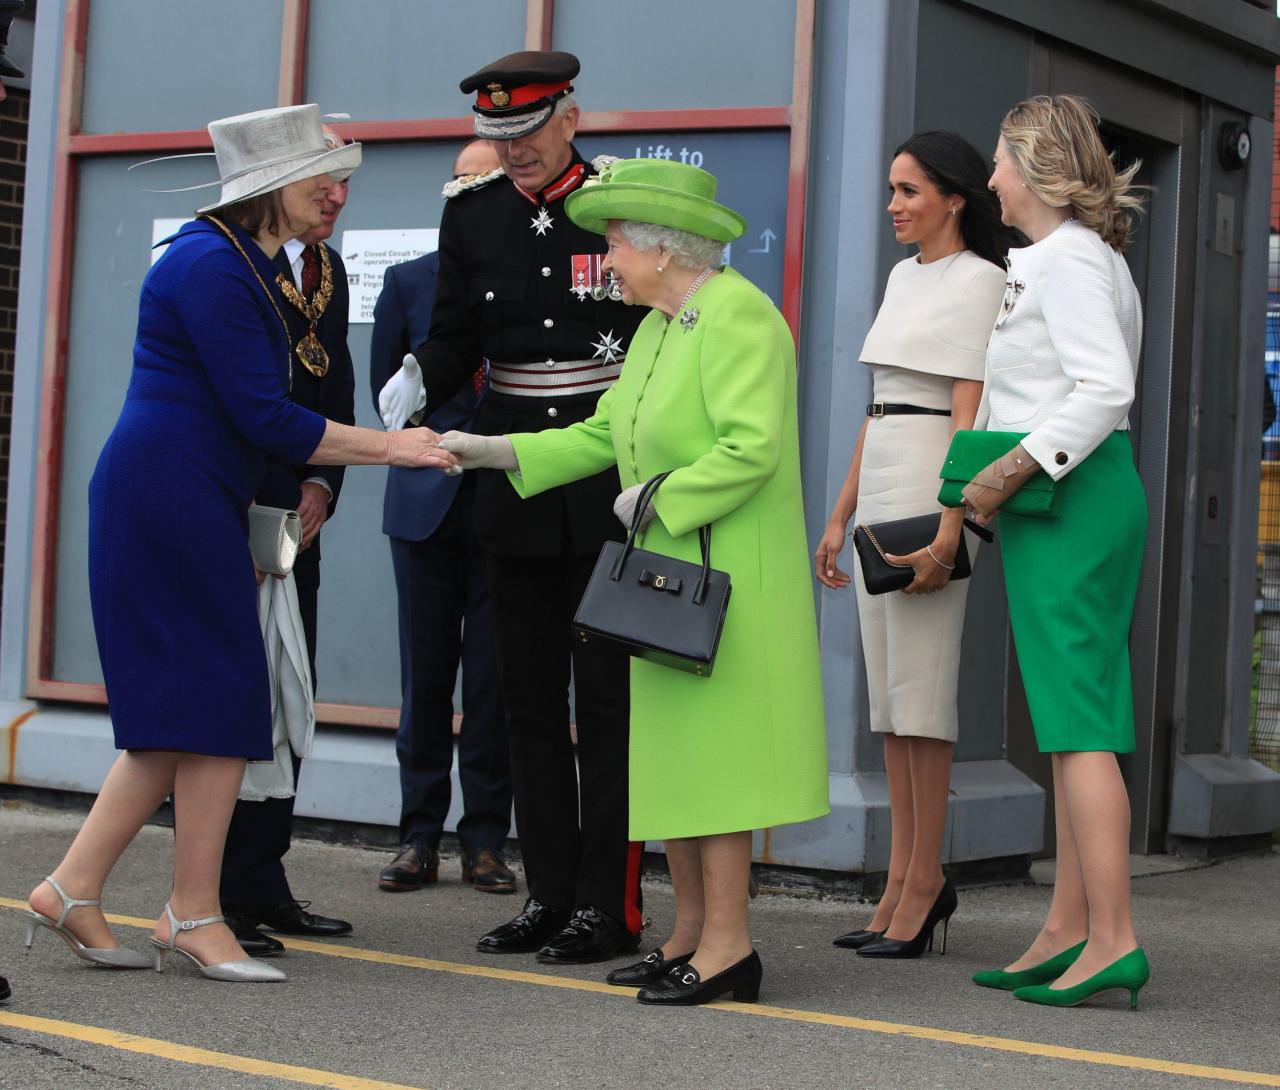 Queen Elizabeth II and the Duchess of Sussex arrive by Royal Train at Runcorn Station to carry out engagements in Cheshire. PRESS ASSOCIATION Photo. Picture date: Thursday June 14, 2018. See PA story ROYAL Queen. Photo credit should read: Peter Byrne/PA Wire